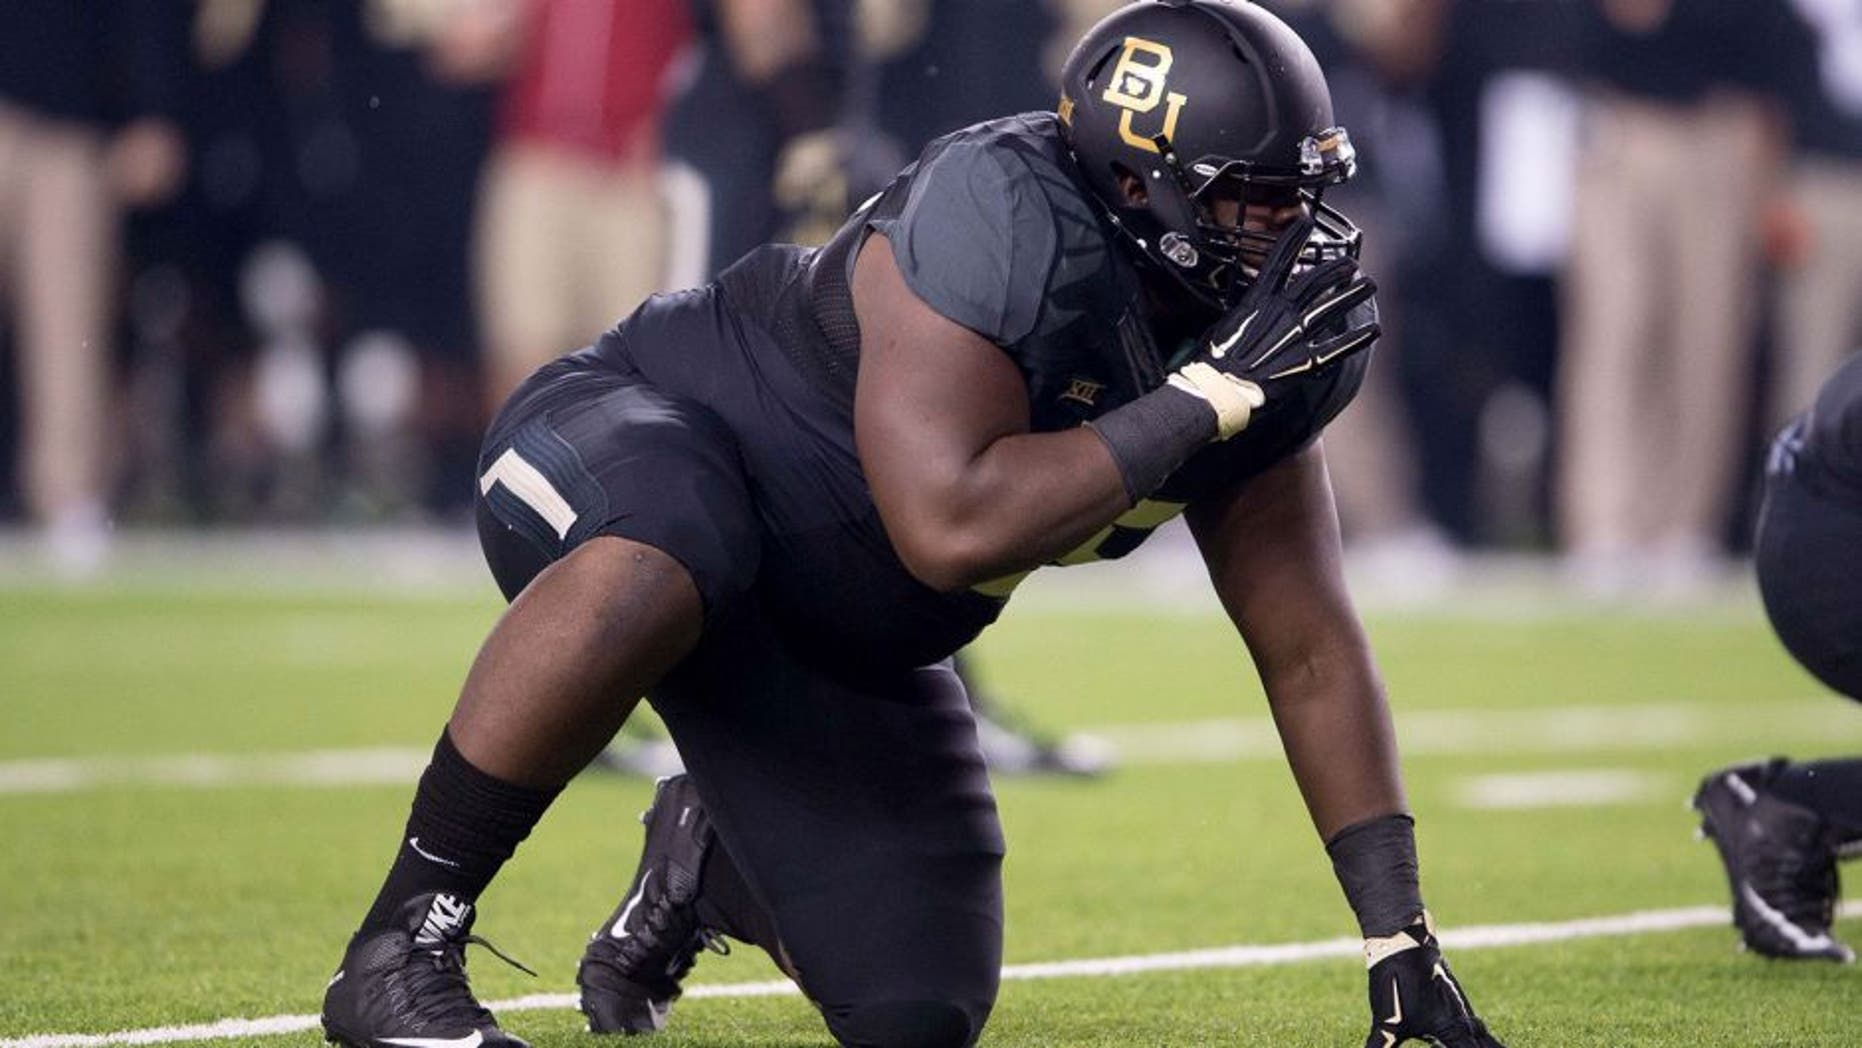 Nov 14, 2015; Waco, TX, USA; Baylor Bears defensive tackle Andrew Billings (75) during the game against the Oklahoma Sooners at McLane Stadium. The Sooners defeat the Bears 44-34. Mandatory Credit: Jerome Miron-USA TODAY Sports